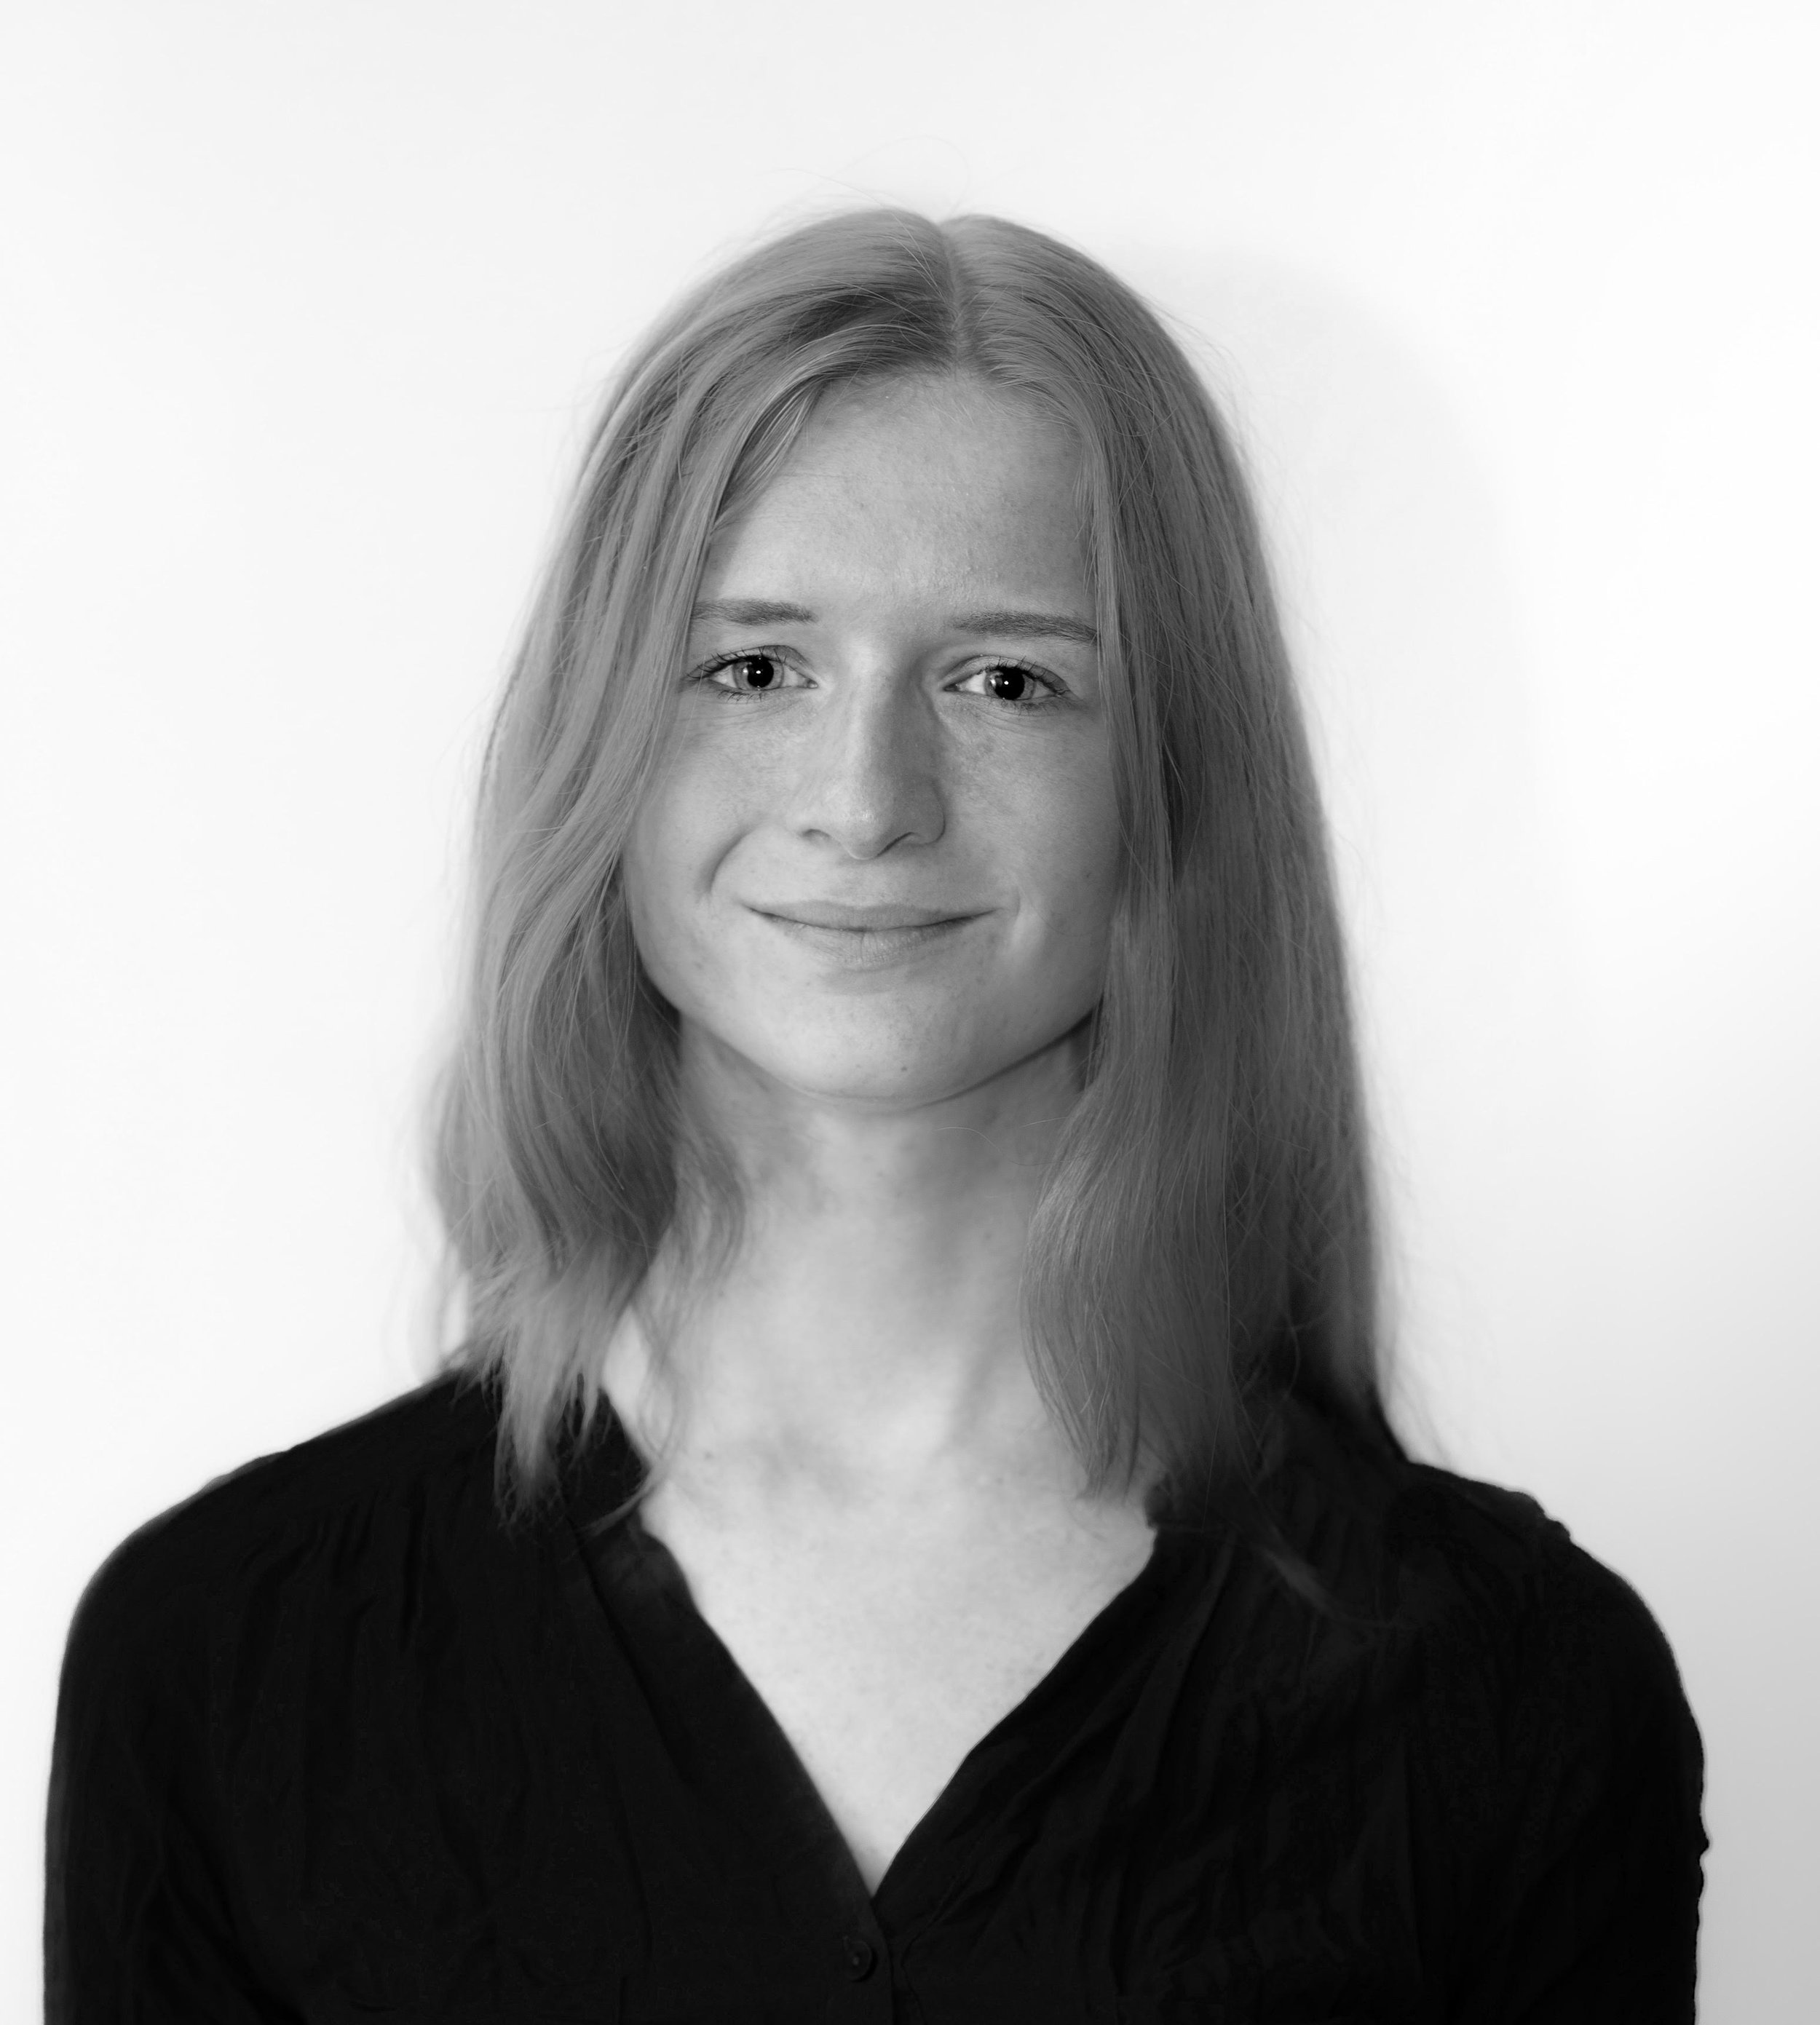 FRANZISKA LippoldT – MATHEMATICIAN   APPLIED ML & CRYPTOGRAPHIC MATH AND STATISTICS